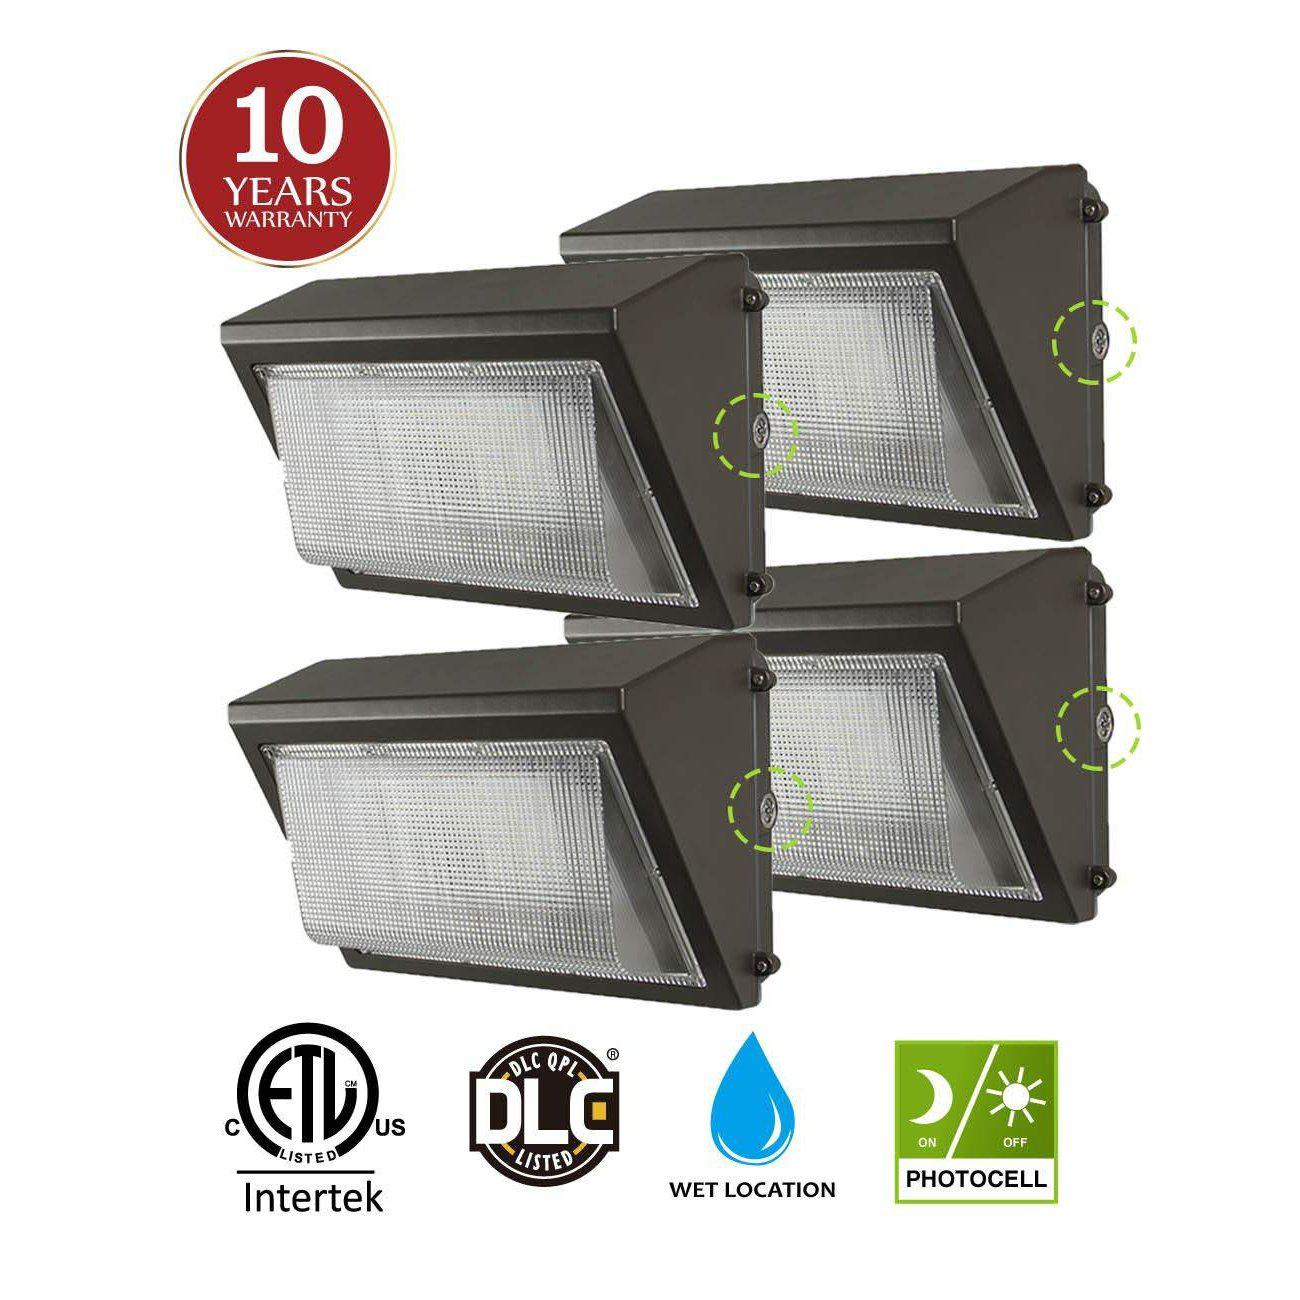 LED Wall Pack Waterproof Outdoor Fixture with Photocell